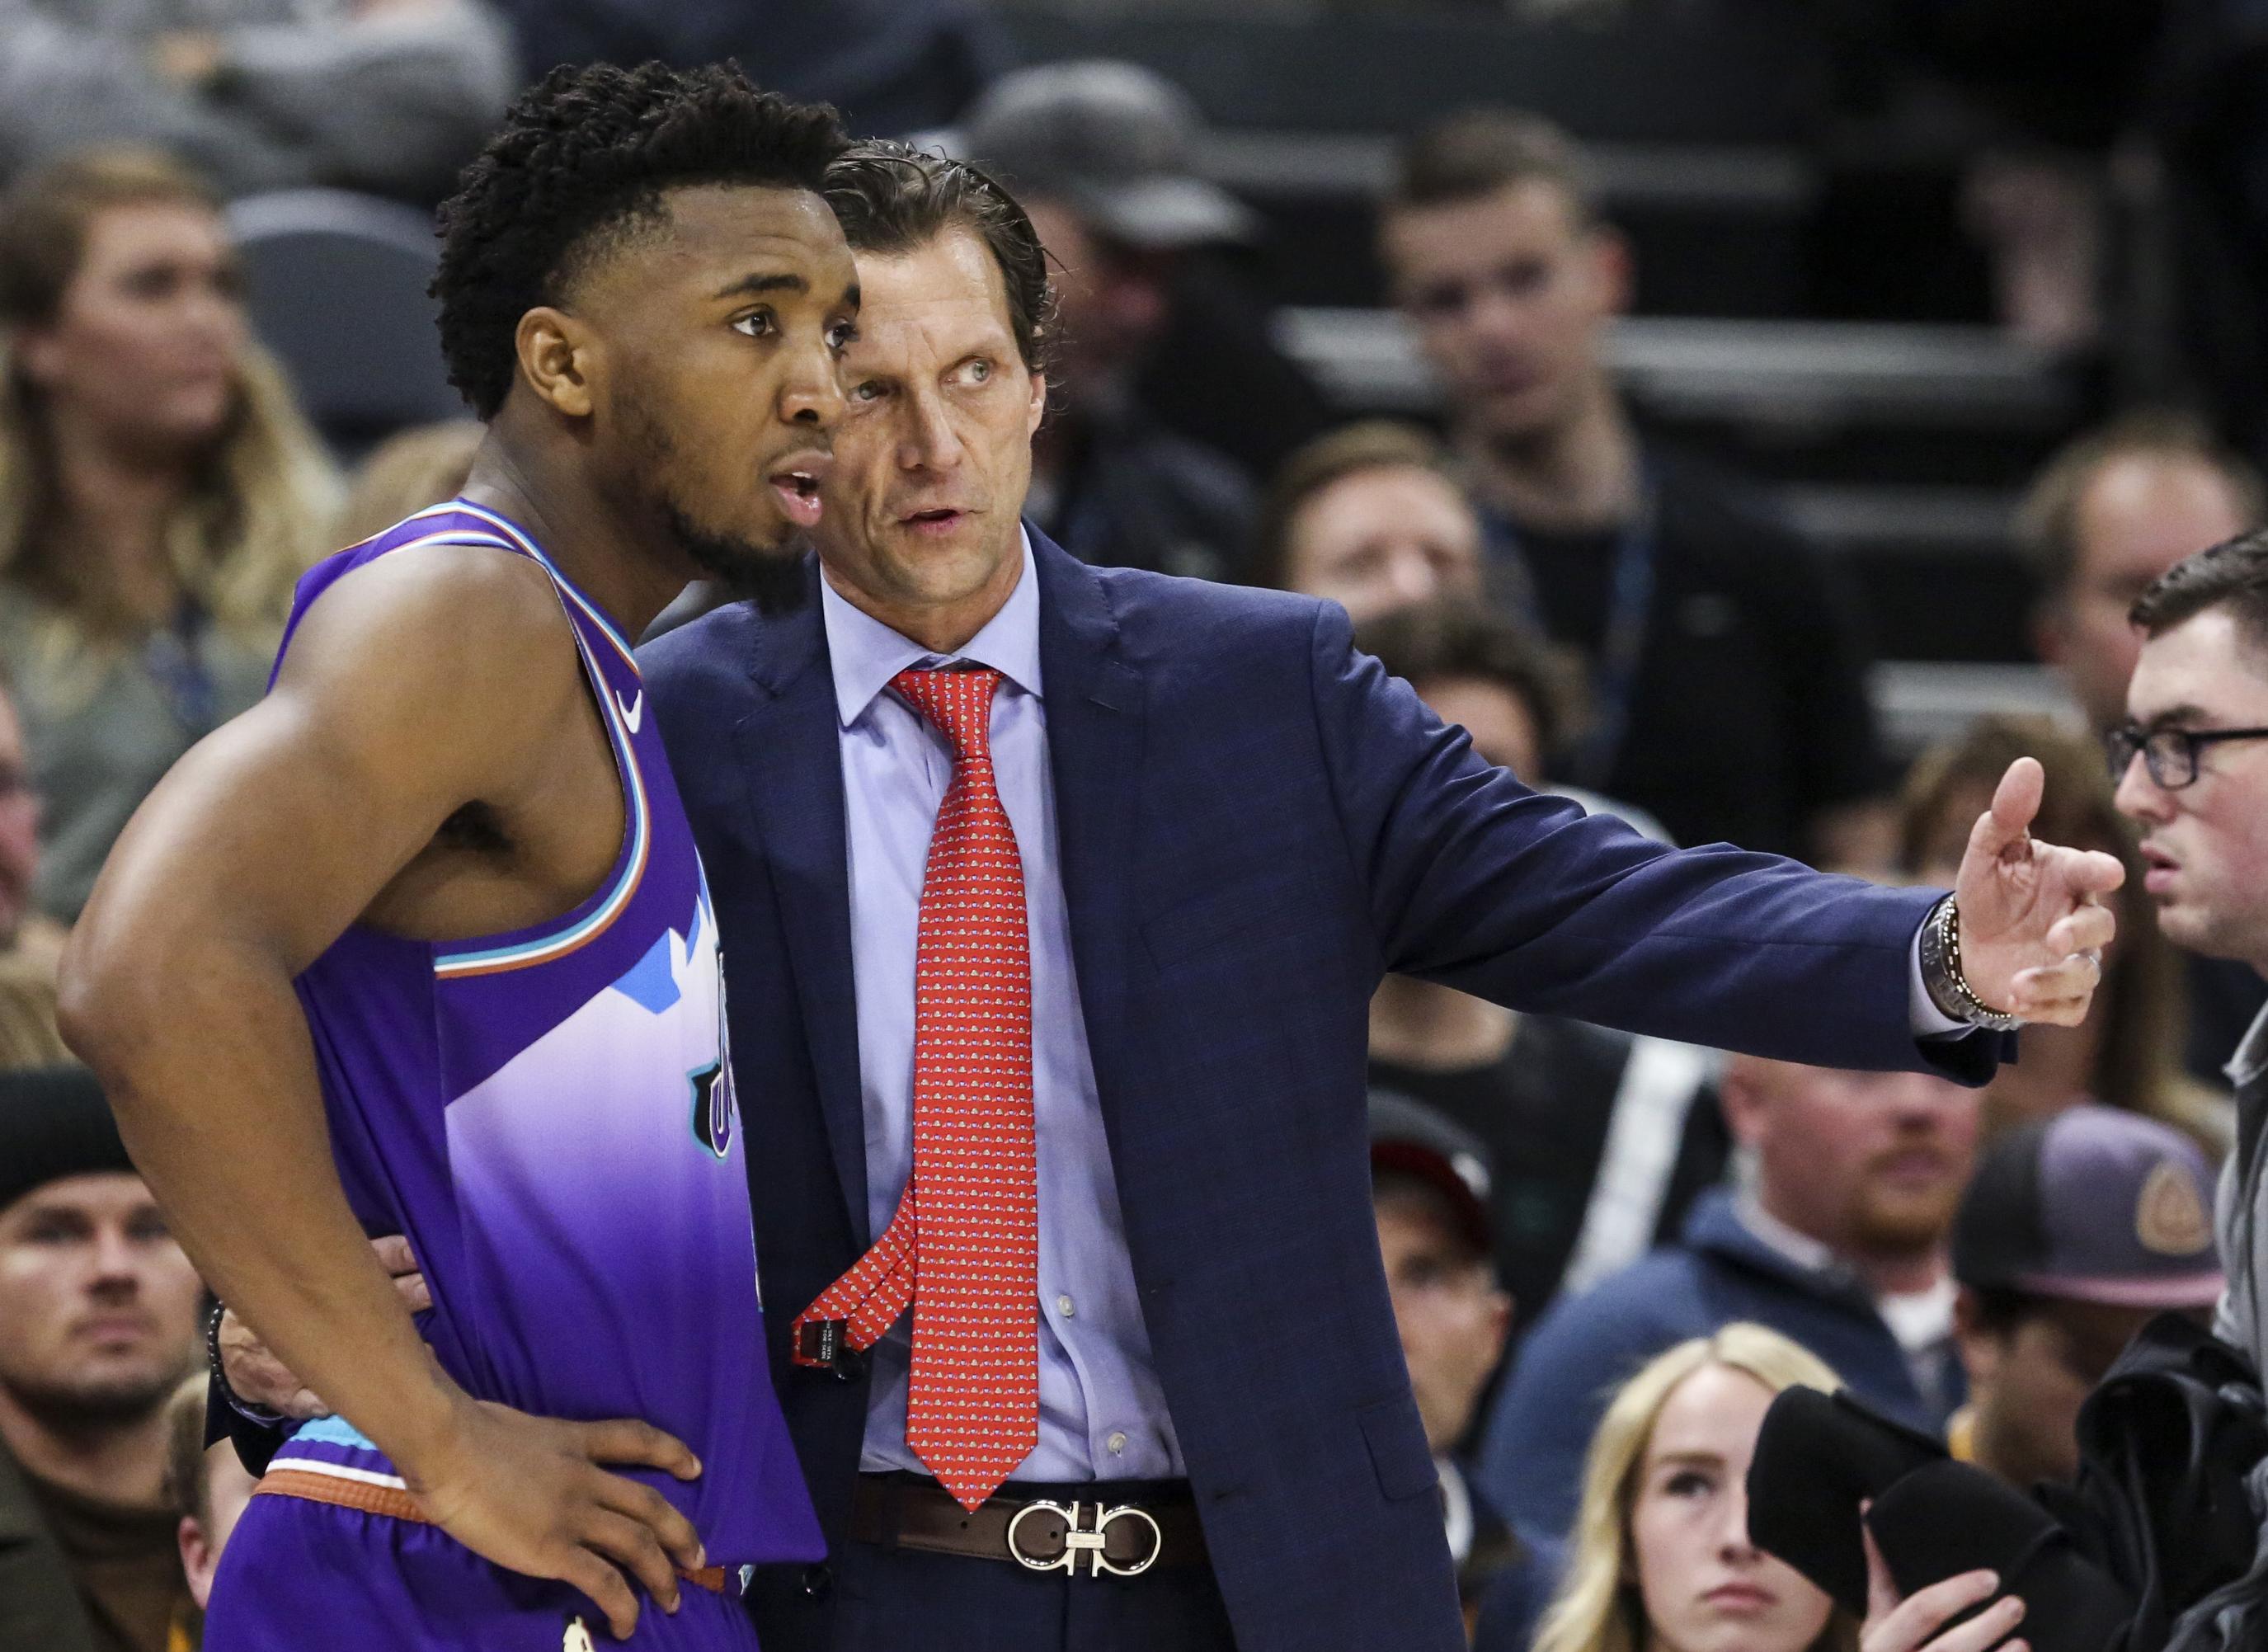 Jazz head coach Quin Snyder talks to guard Donovan Mitchell (45) during a break in play in the second half of an NBA basketball game at Vivint Smart Home Arena in Salt Lake City on Saturday, Dec. 7, 2019. The Jazz won in regulation 126-112 over the Grizzlies.